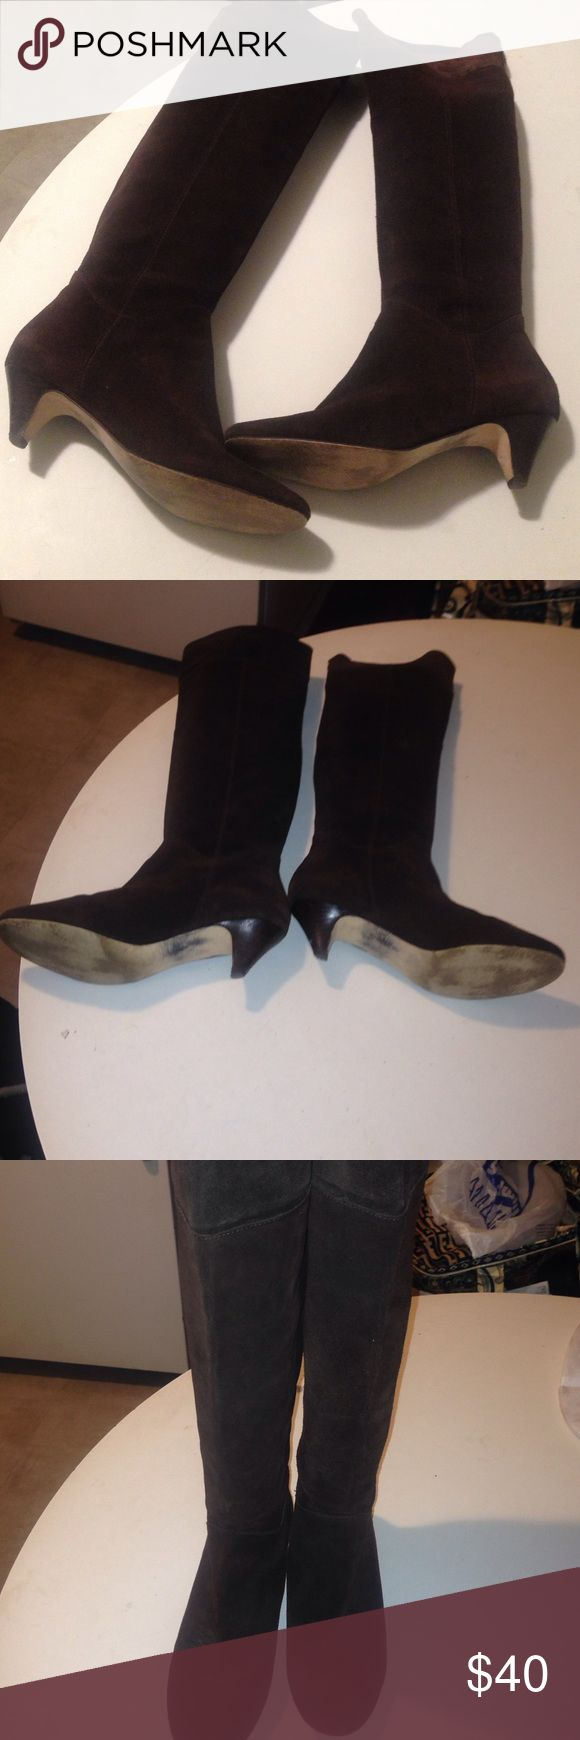 Authentic STEVE MADDEN KNEE HIGH BOOTS 💥💥SALE Long suede boo. Can be cuffed st the knee. 2.5' heels with minor wear. Stylish & clean Steve Madden Shoes Winter & Rain Boots